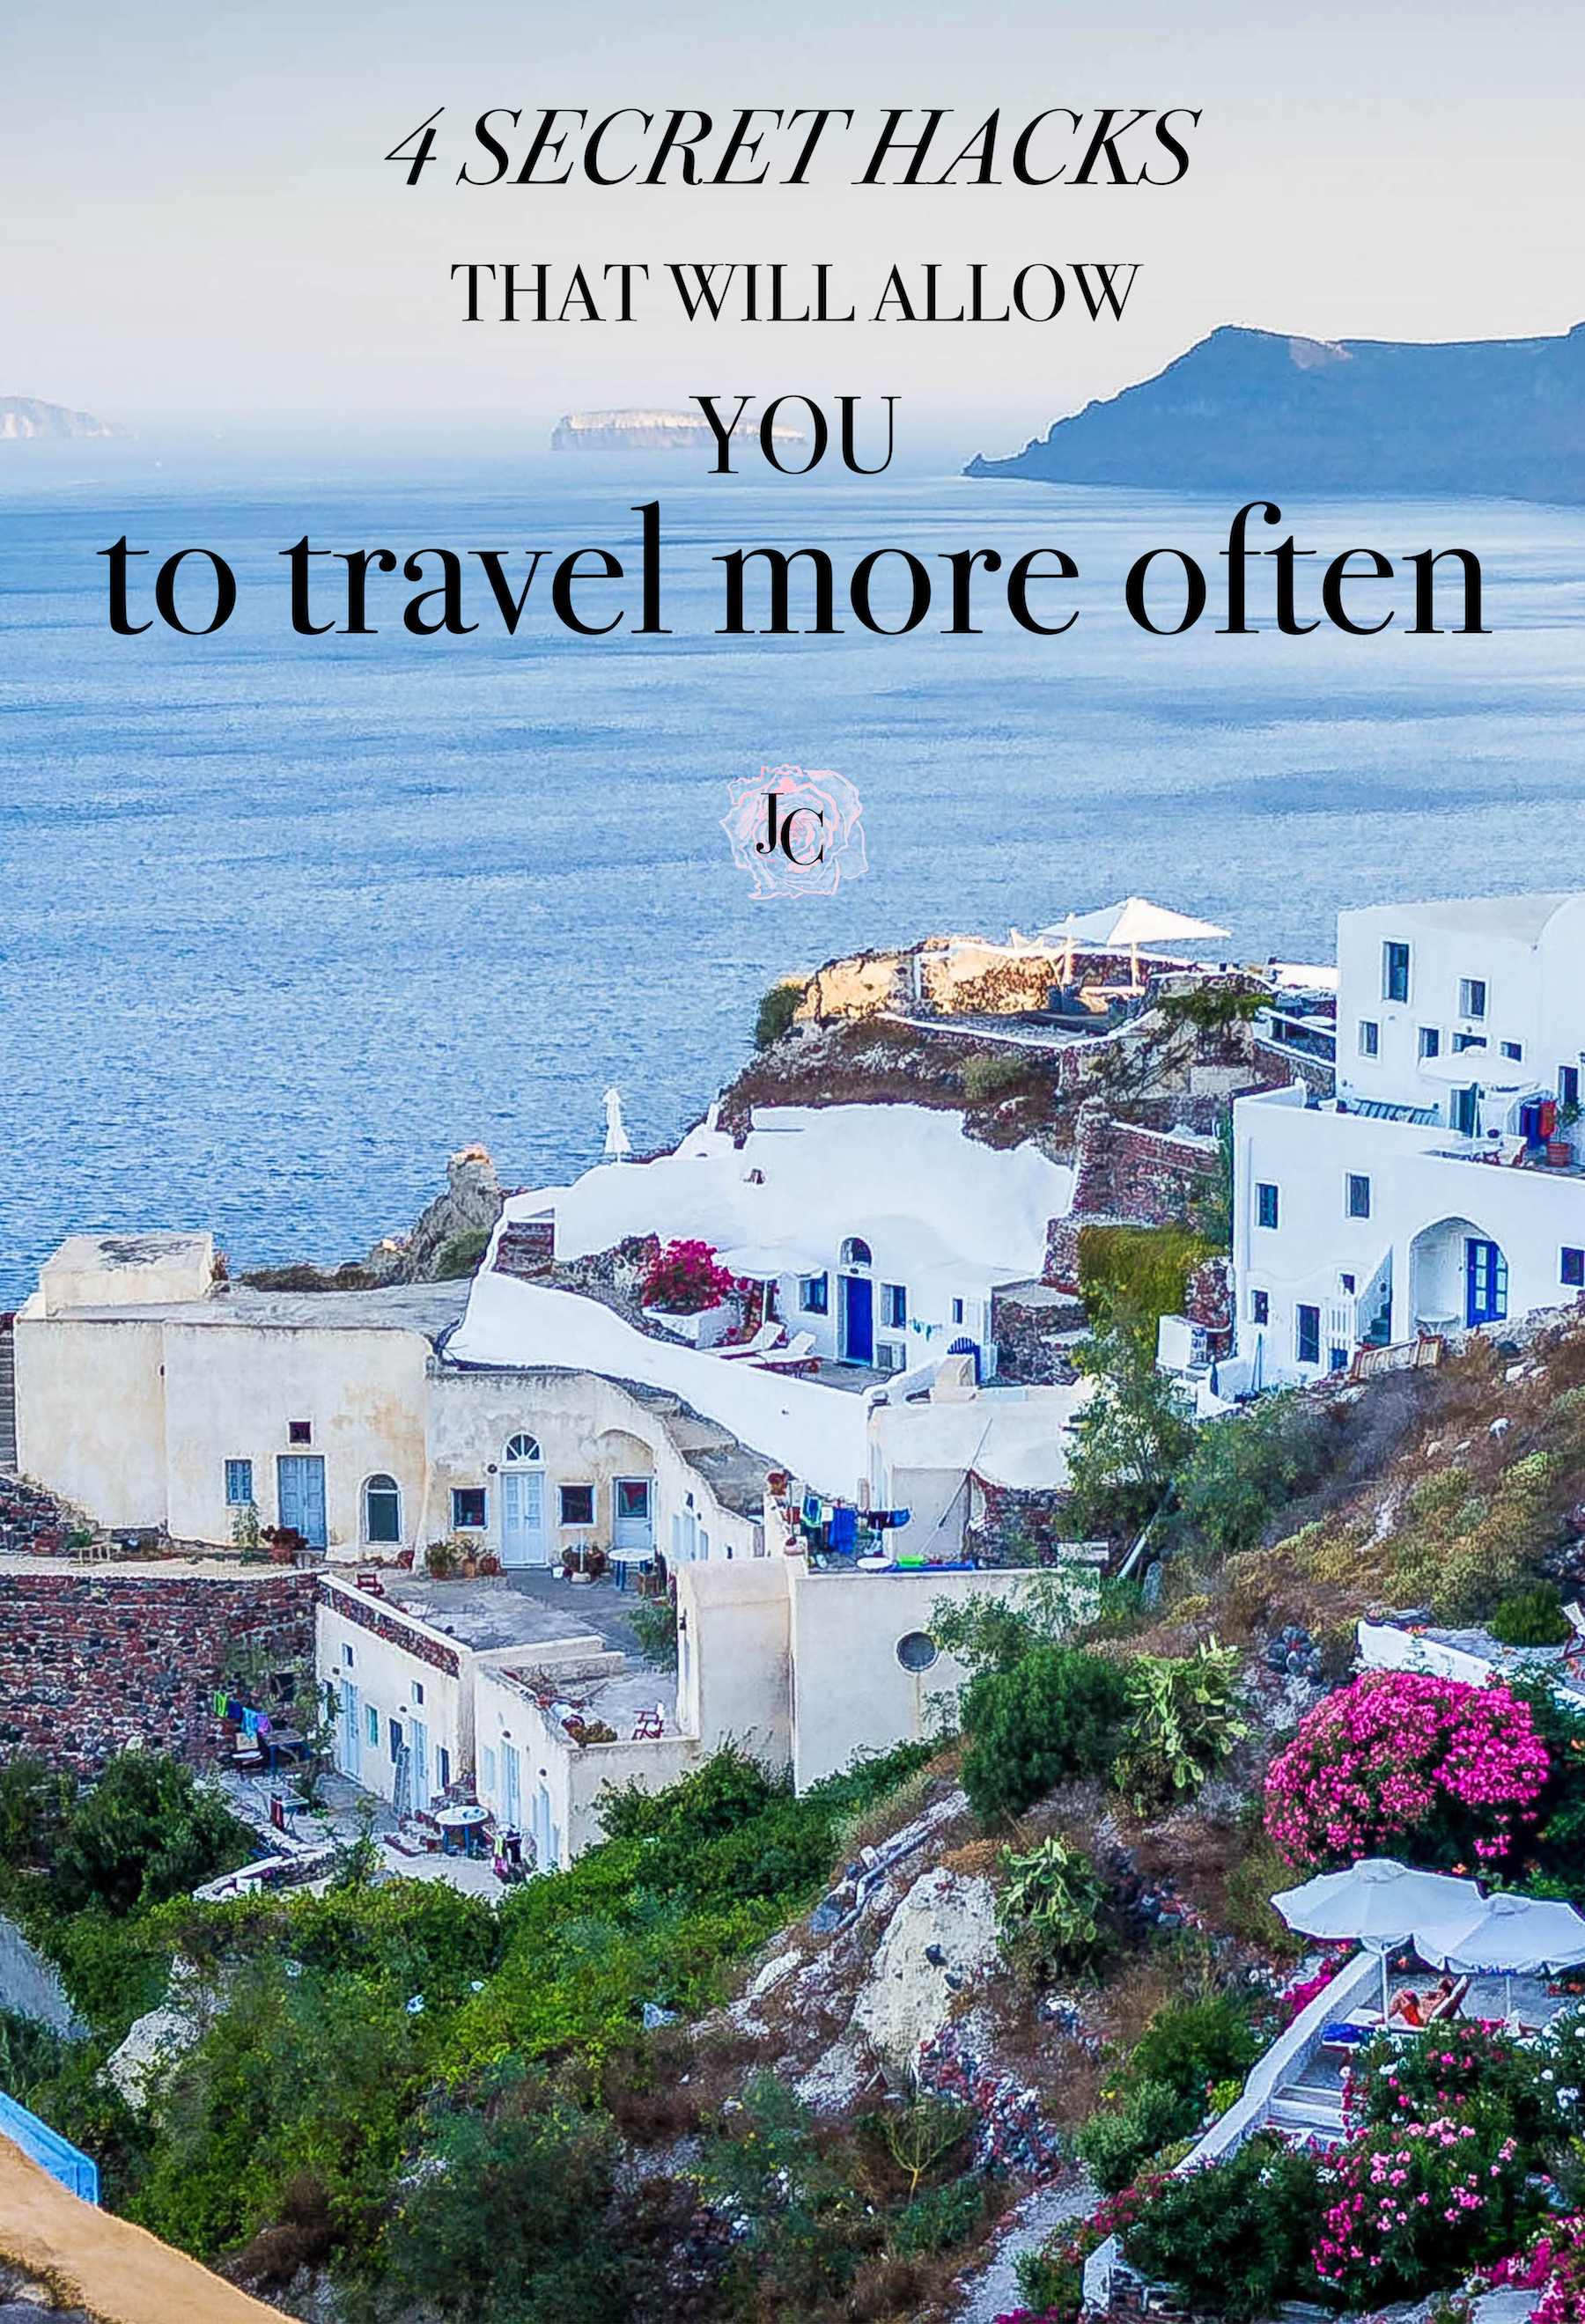 Adventures are lifetime investments, but still lots of people think they cannot afford to travel. We bring to you, 4 secret hacks that will save you money while traveling and make it possible to travel more often. Click to read more!